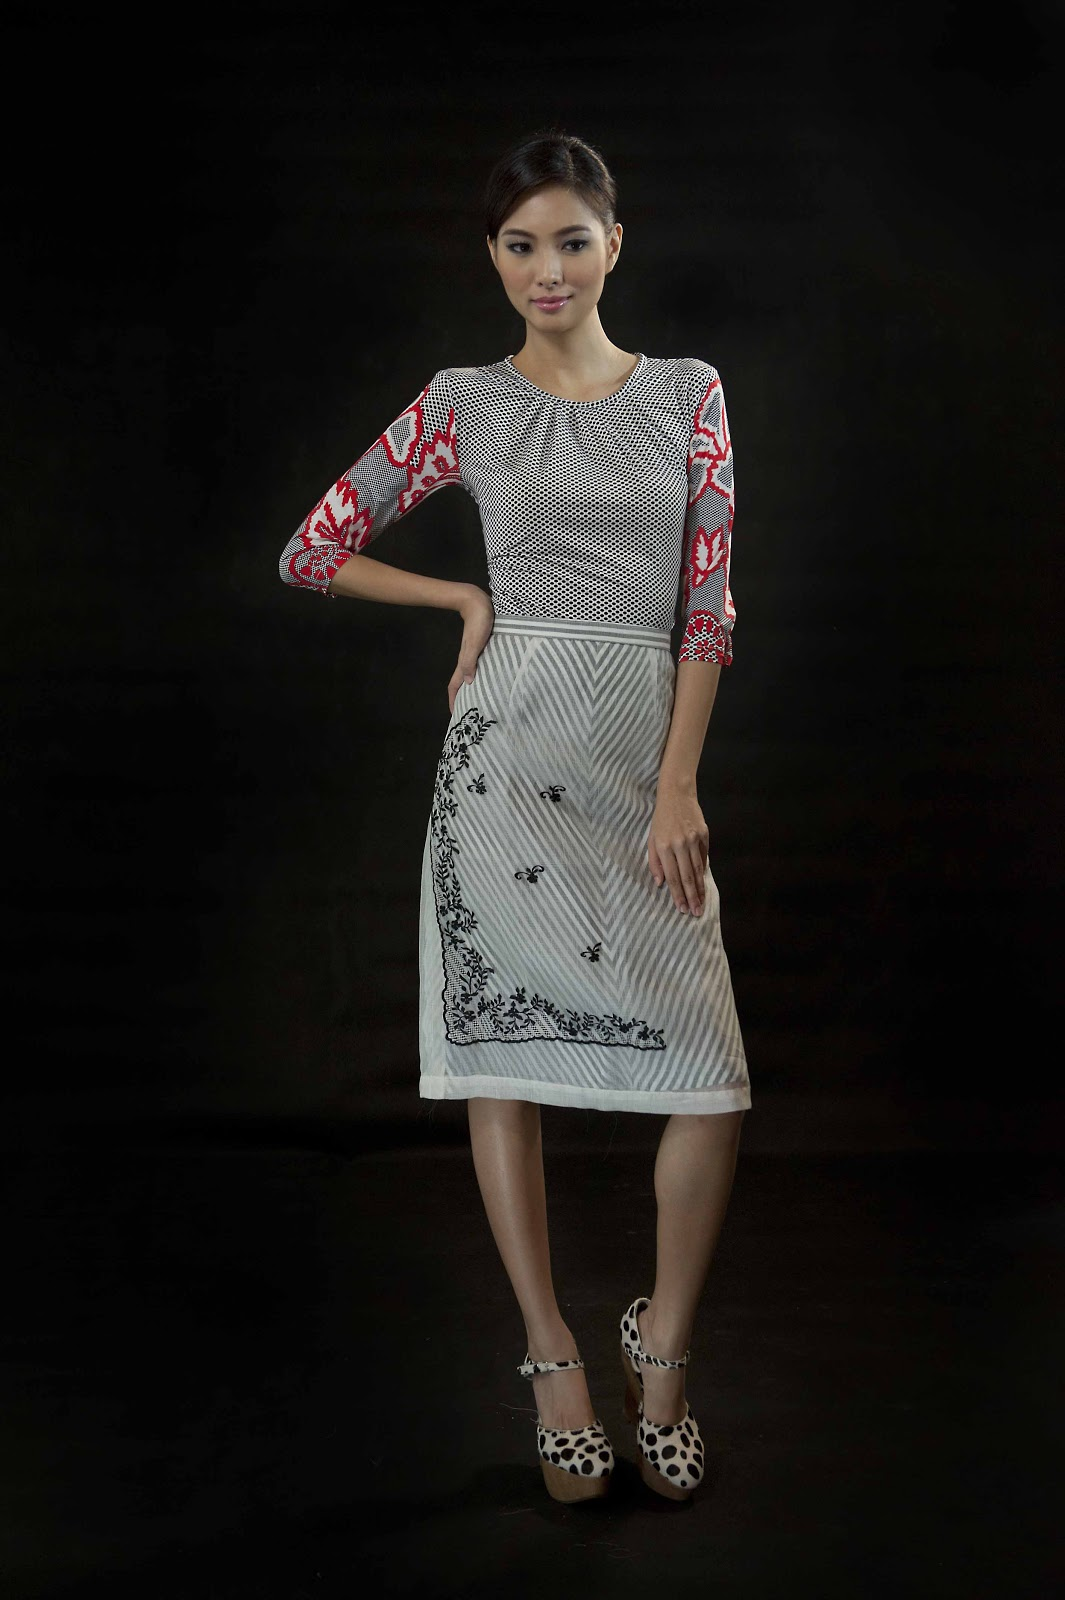 Pictures of Modern Filipiniana Dresses http://www.manilafashionobserver.com/2012/12/modern-filipiniana-at-religioso.html